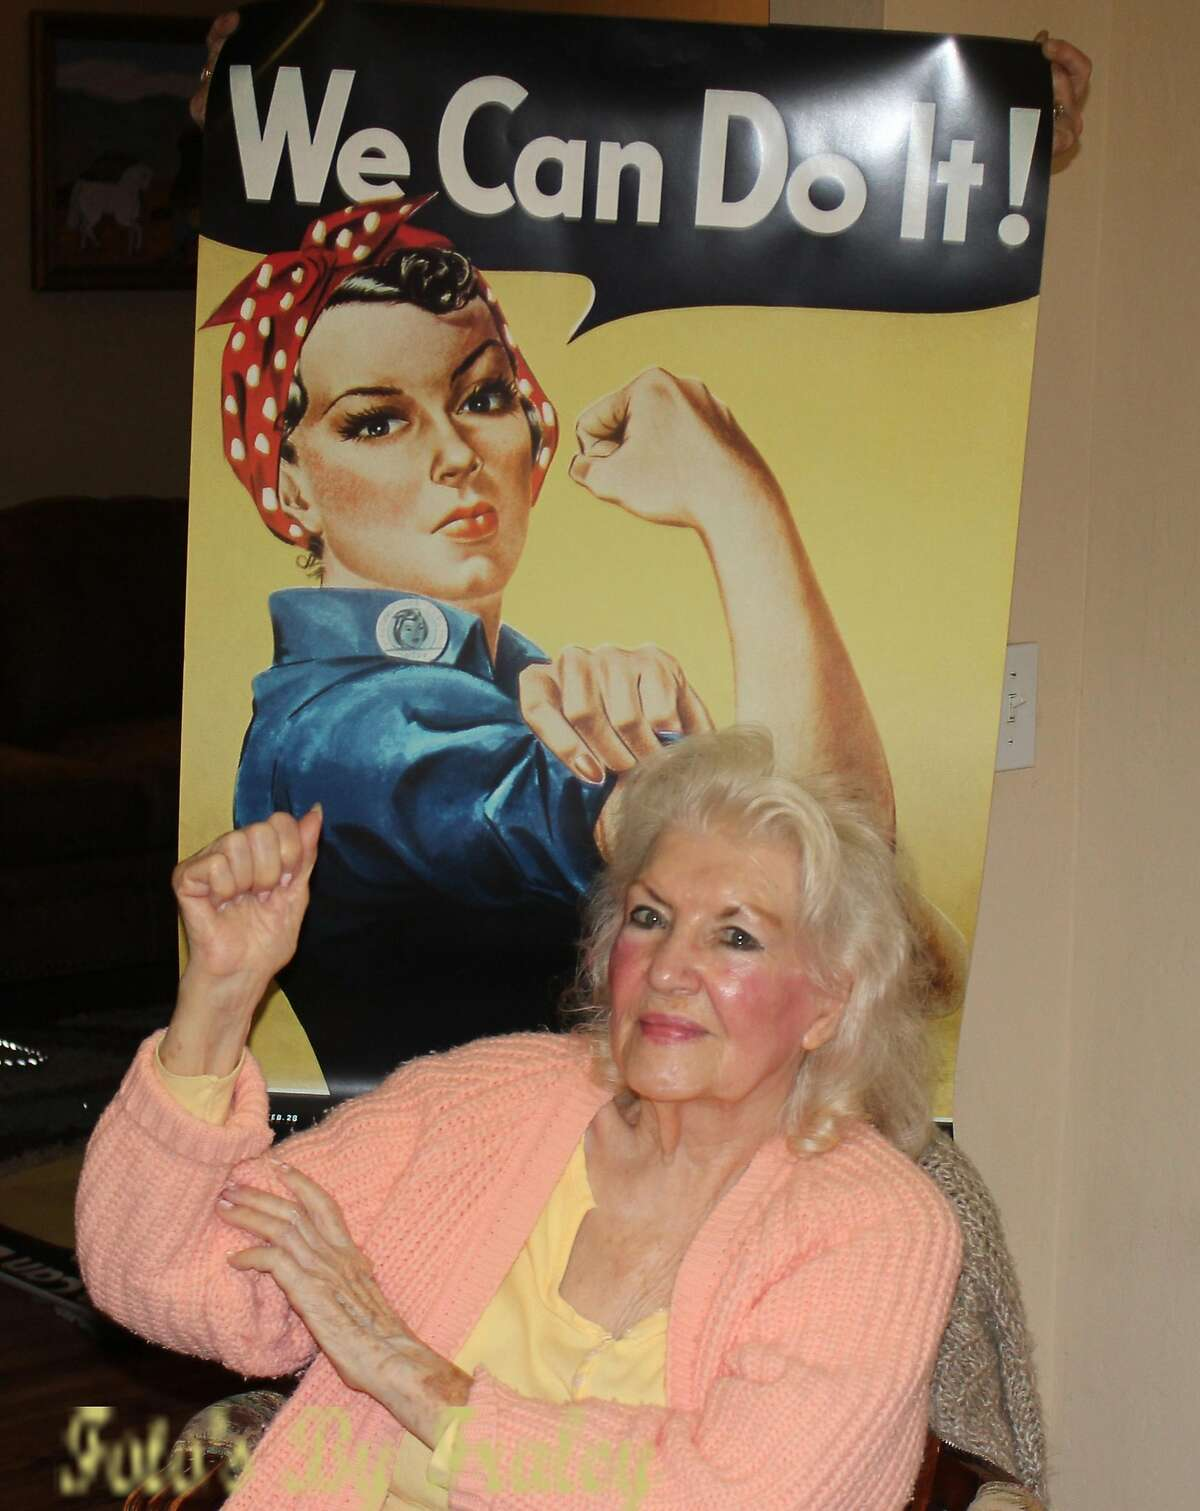 """In a photo provided by John D. Fraley, Naomi Parker Fraley in 2015 with the Rosie the Riveter poster that became a feminist touchstone. Fraley, who died on Jan. 20, 2018, at age 96 in Longview, Wash., went unsung for seven decades before being identified as the real """"Rosie the Riveter"""" the female war worker of 1940s popular culture who became a feminist touchstone in the late 20th century."""